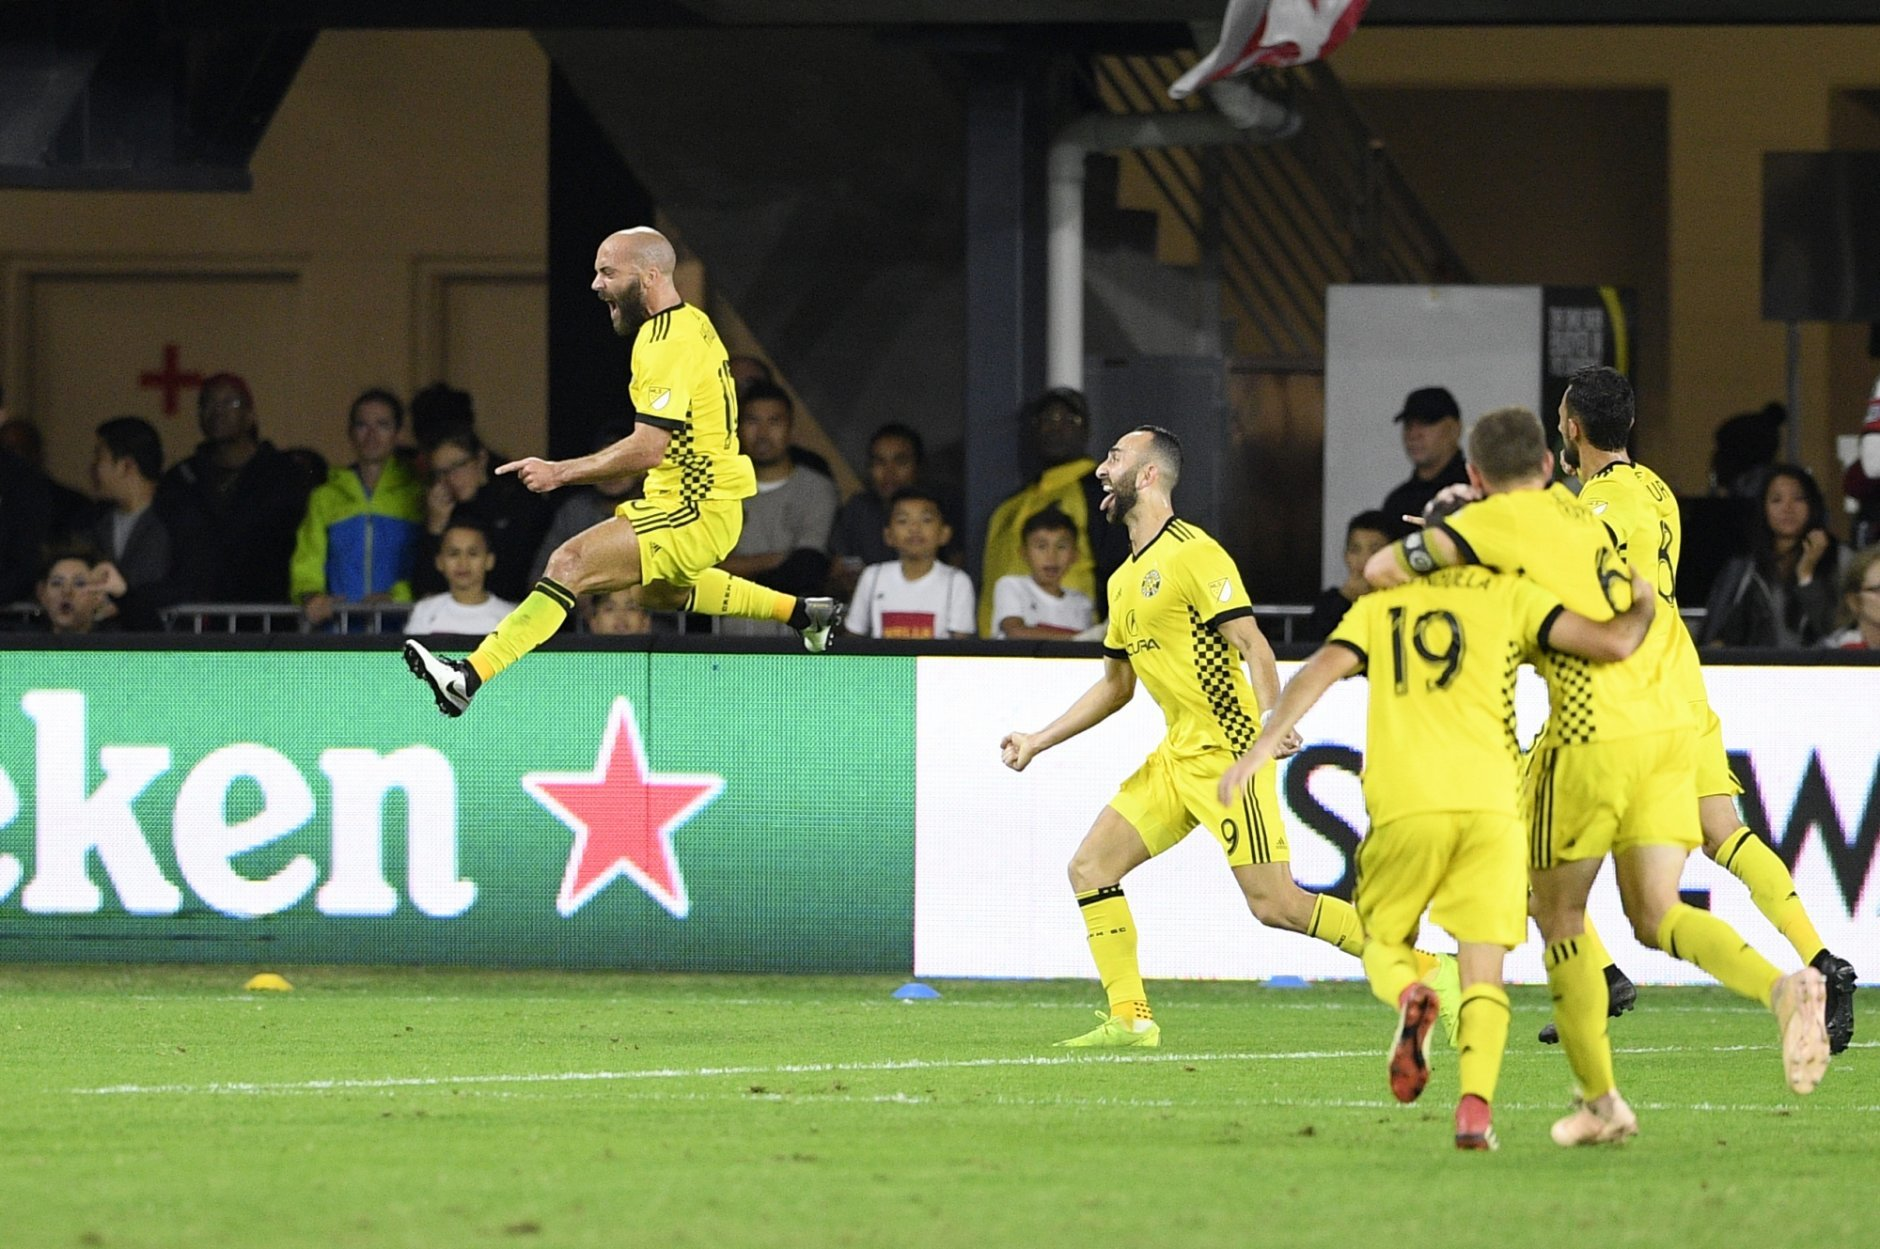 Columbus Crew SC forward Federico Higuain, left, celebrates his goal with midfielder Justin Meram (9) and others during the first half of an MLS playoff soccer match against D.C. United, Thursday, Nov. 1, 2018, in Washington. (AP Photo/Nick Wass)